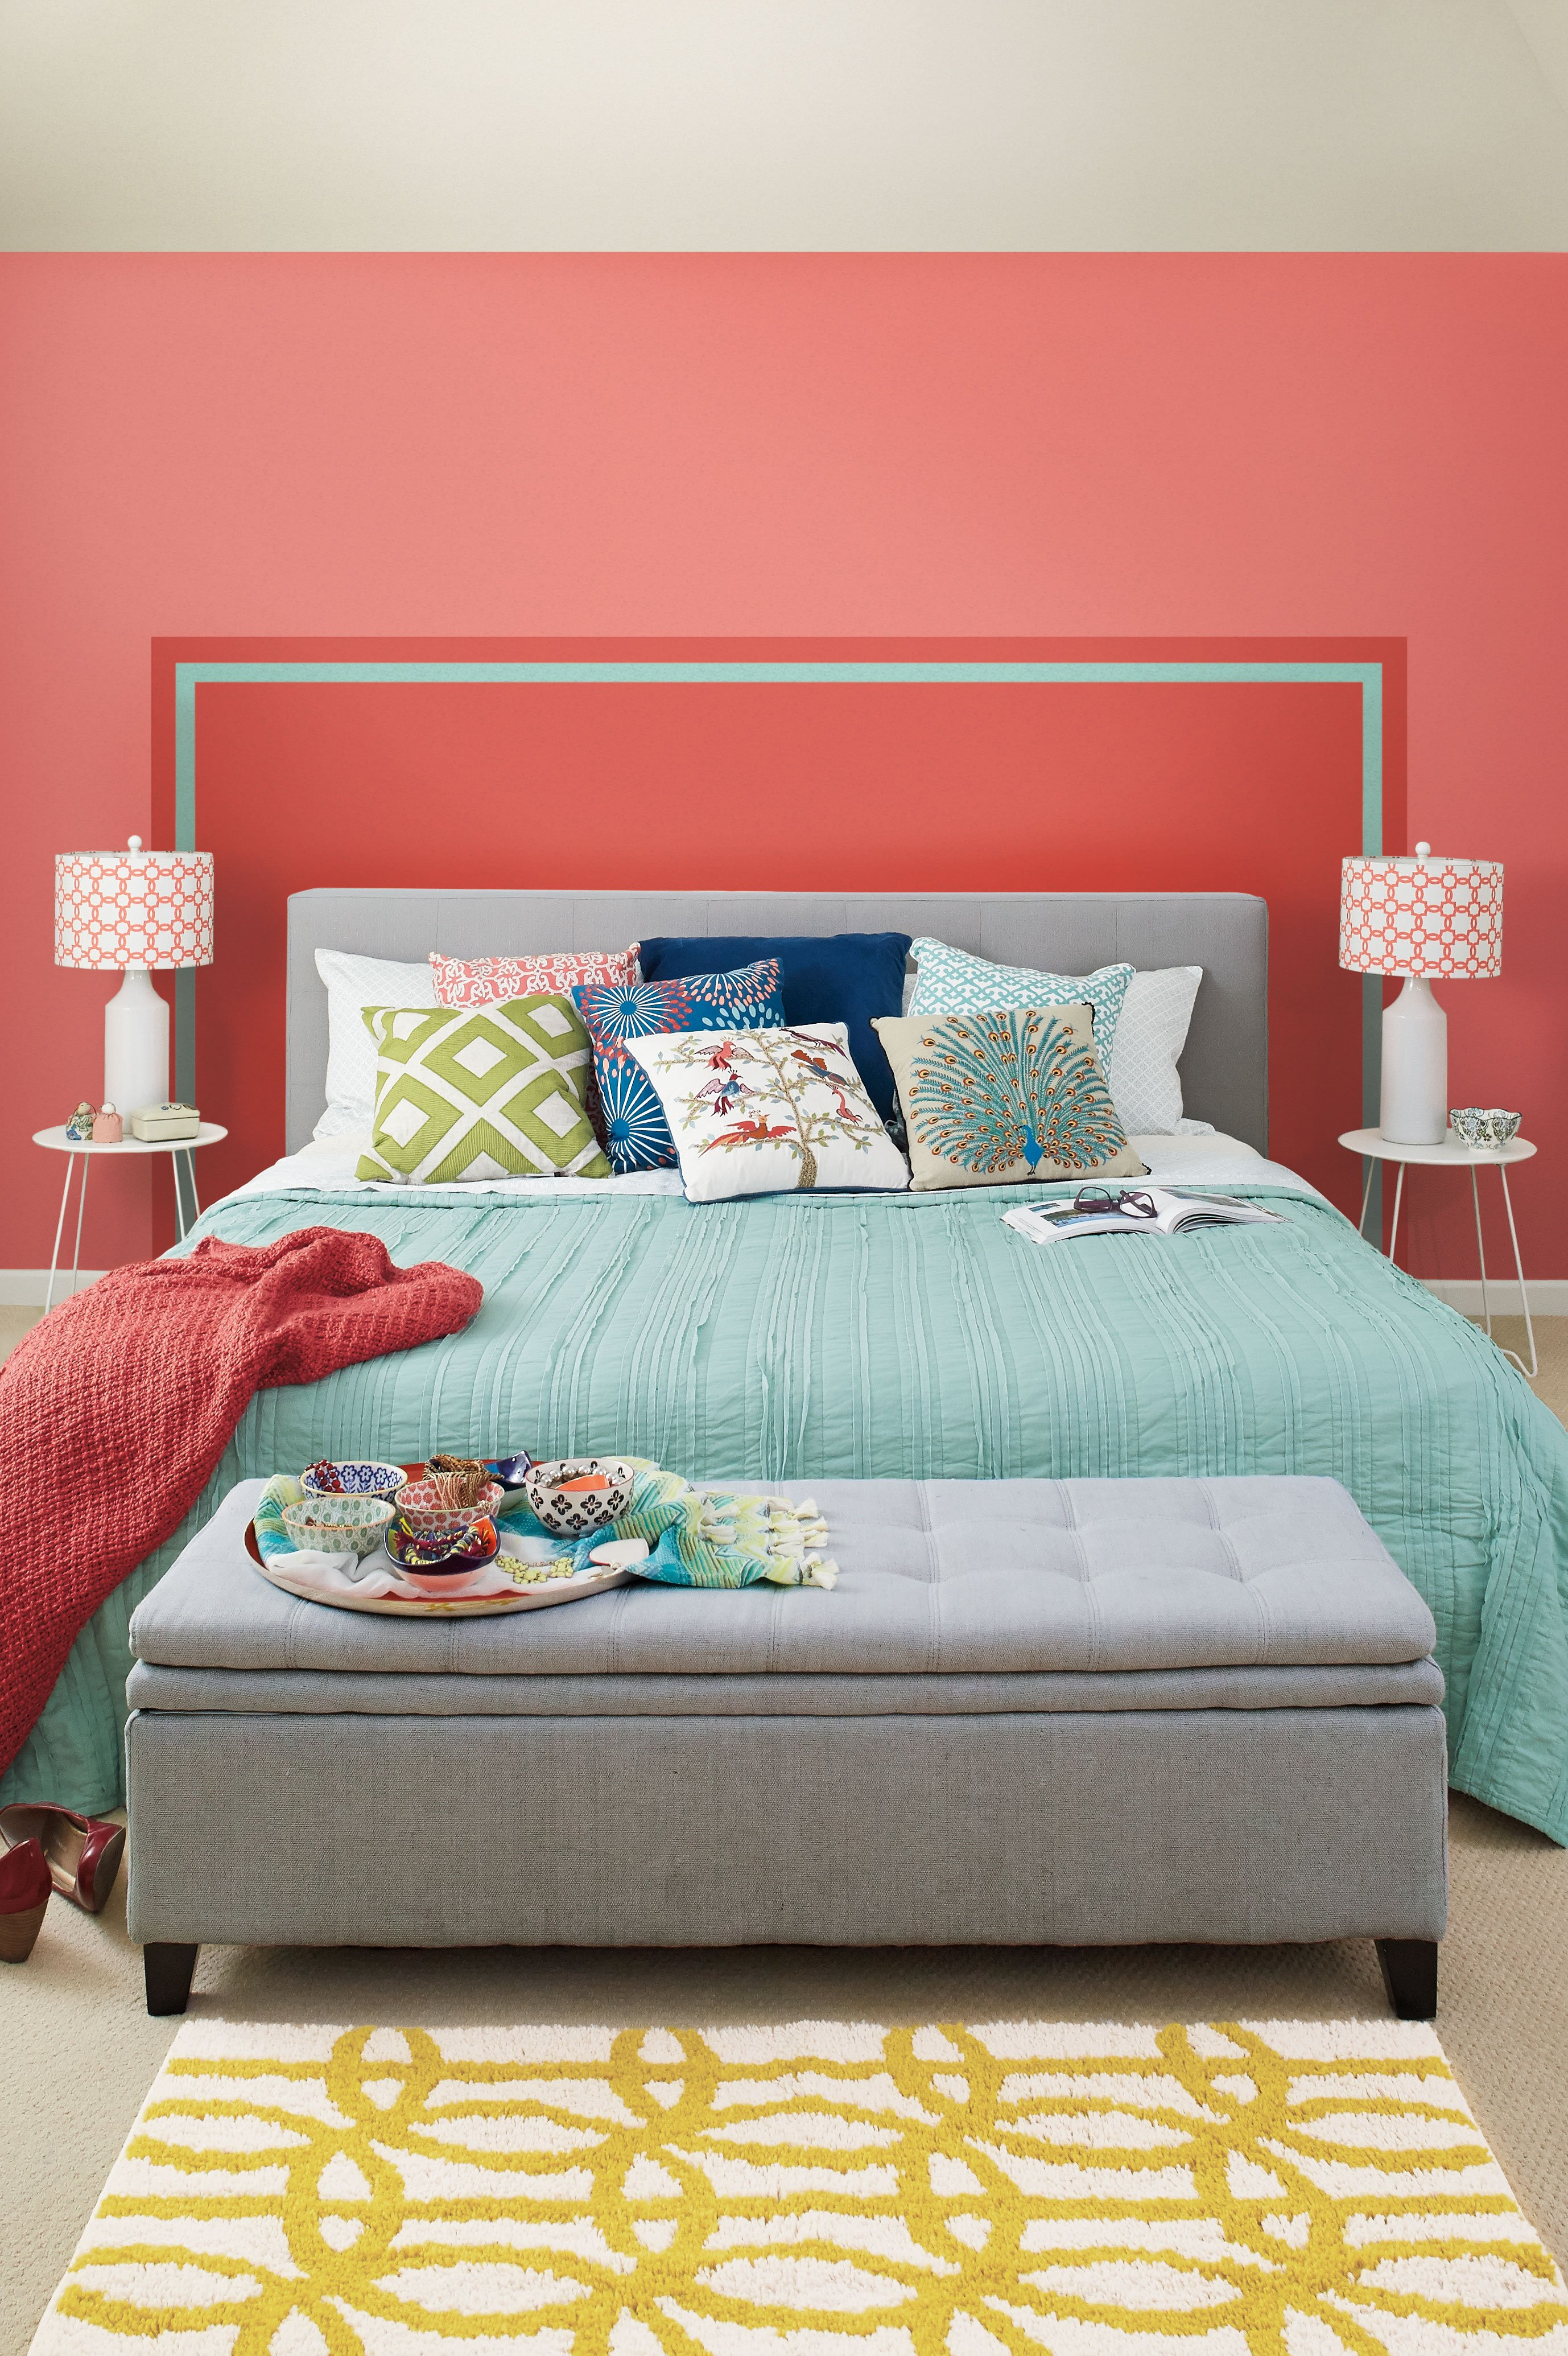 Simple Solutions: Painted Headboard | Apartment Therapy